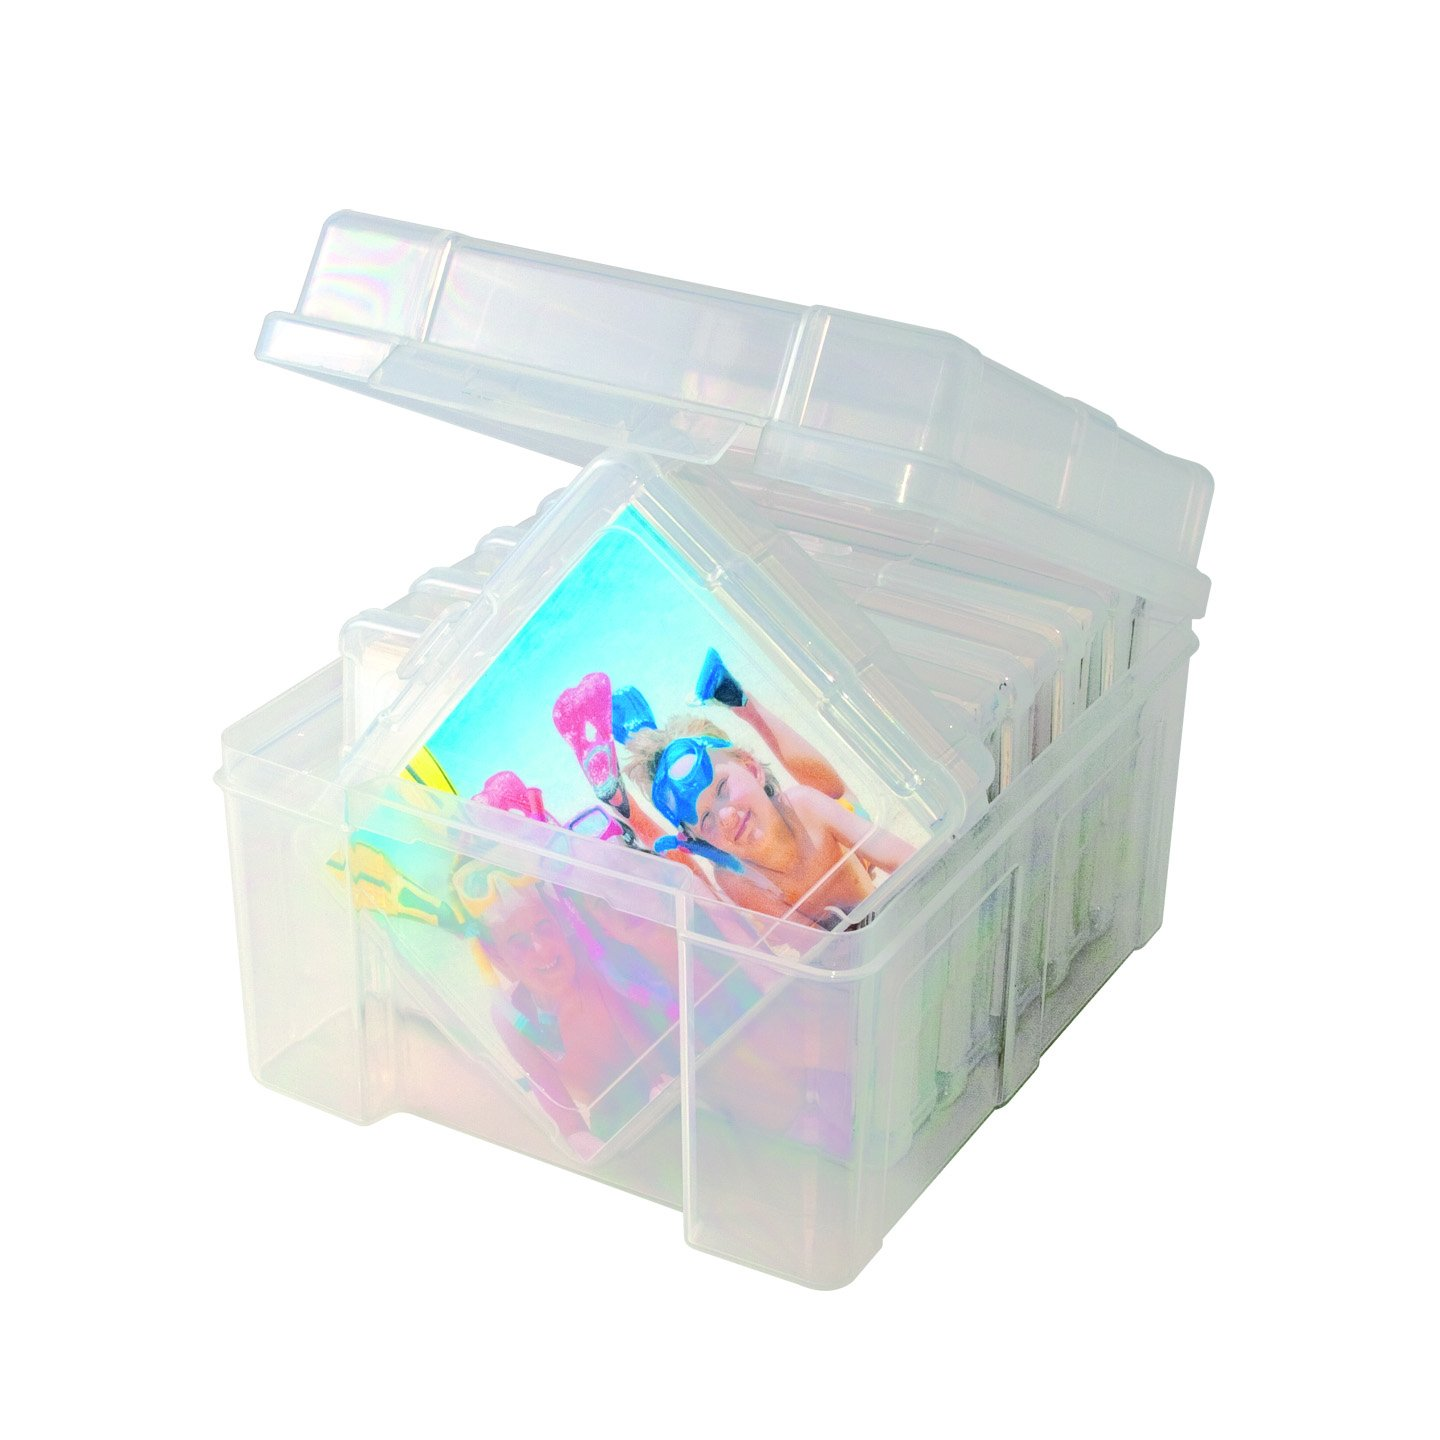 Advantus Photo Keeper Box with 6 Individual Clear Photo Cases, Holds up to 600 Photos, Embellishment and Craft Storage Containers, 61989 Advantus Corp.- Office